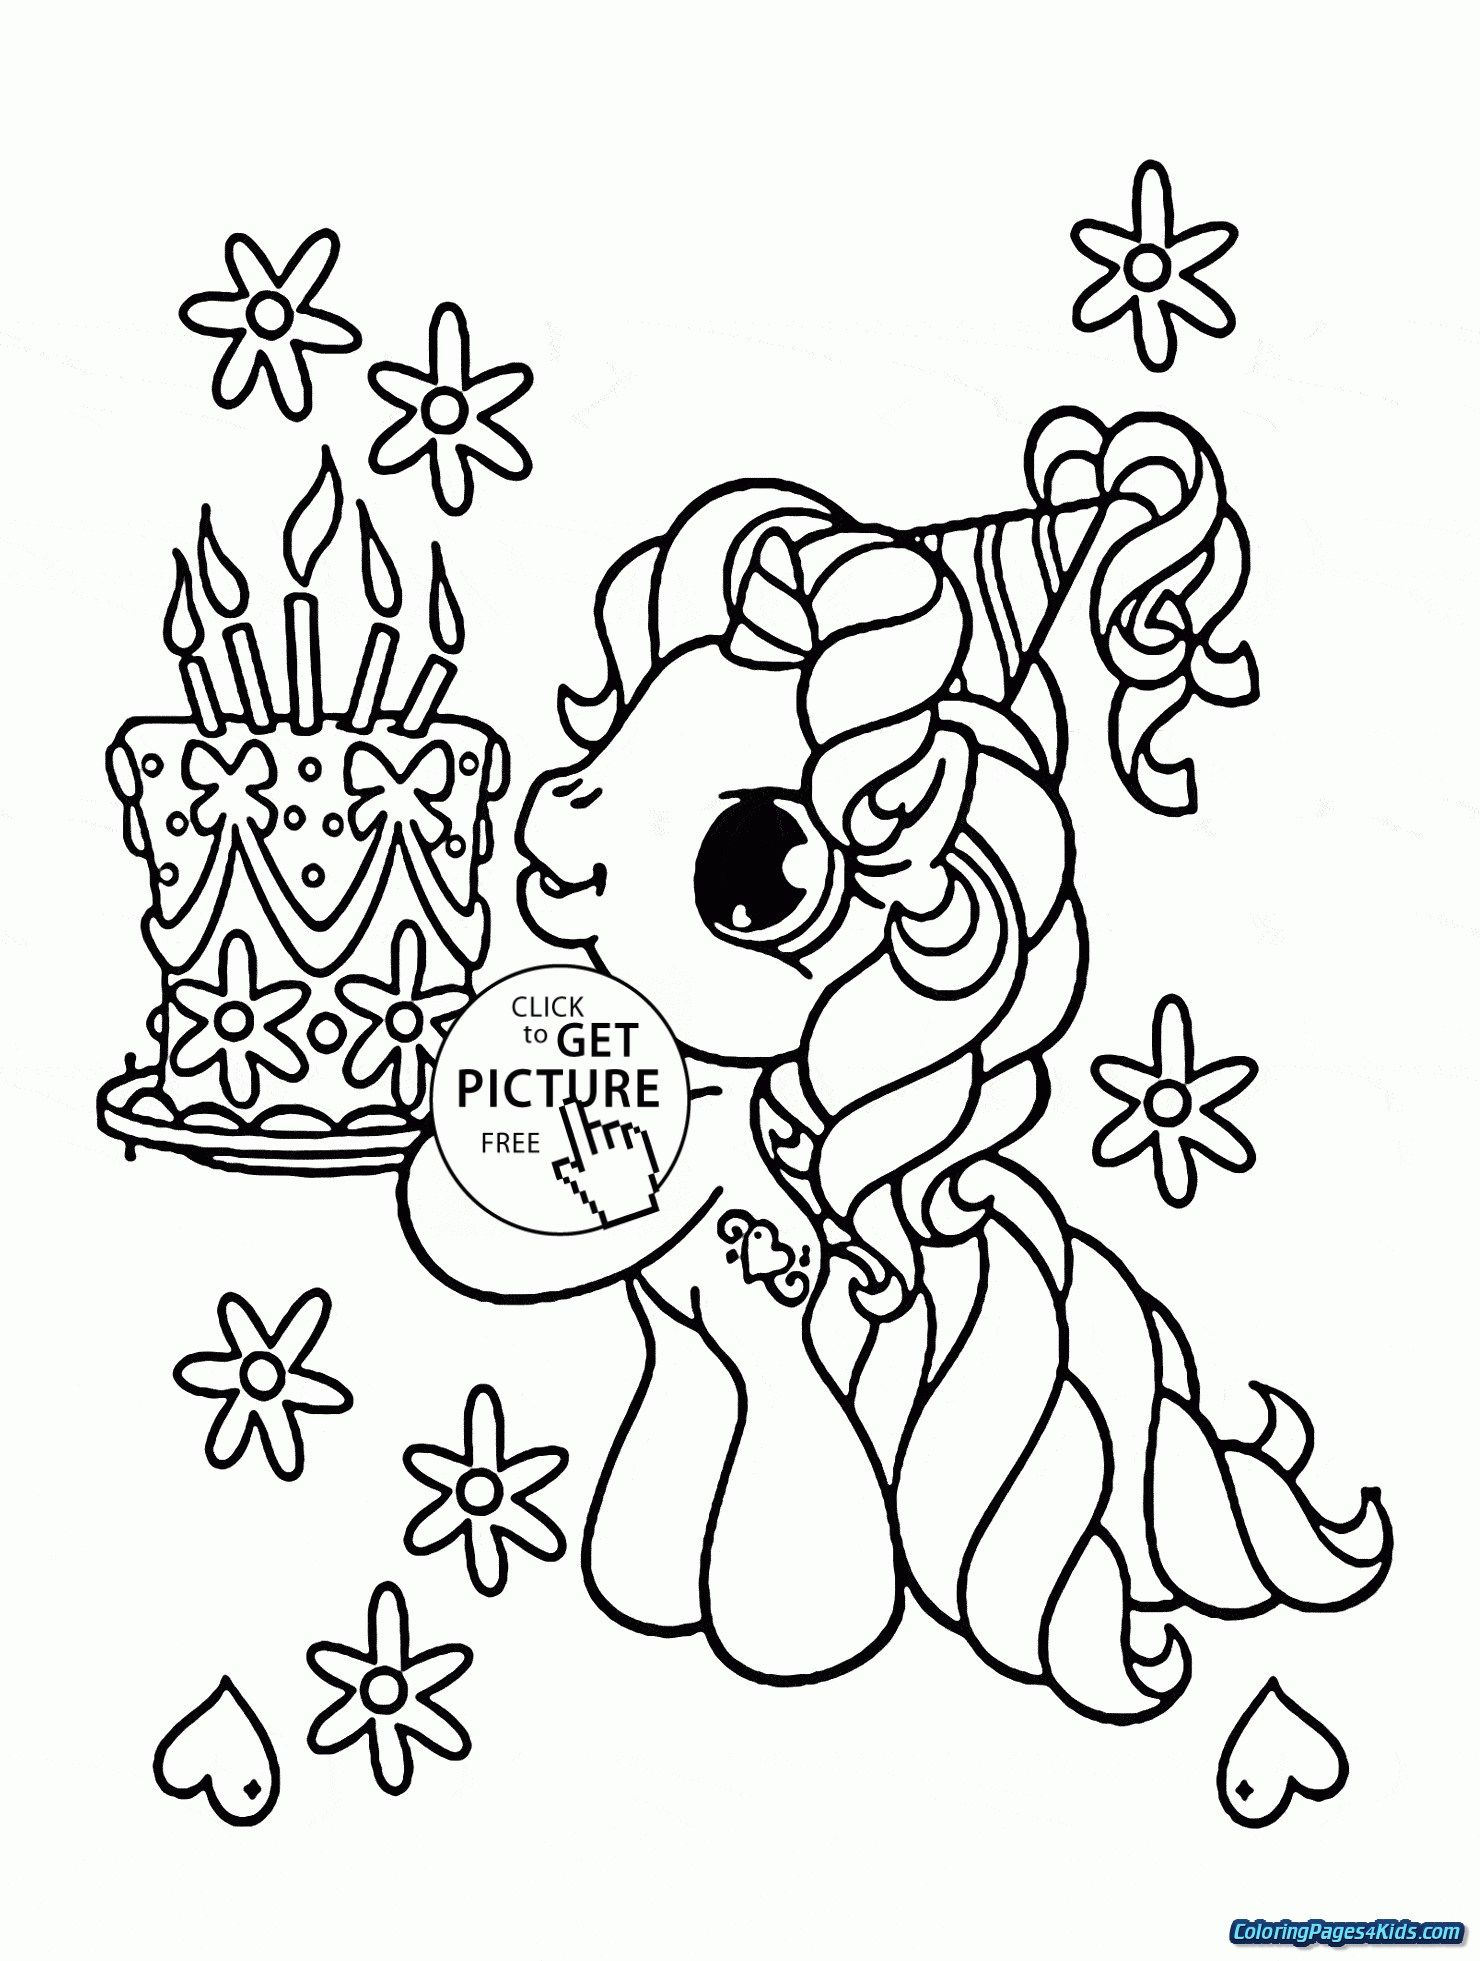 30 Marvelous Photo Of Birthday Cake Coloring Pages Birthday Cake Coloring Pages Birth Unicorn Coloring Pages Birthday Coloring Pages Dinosaur Coloring Pages